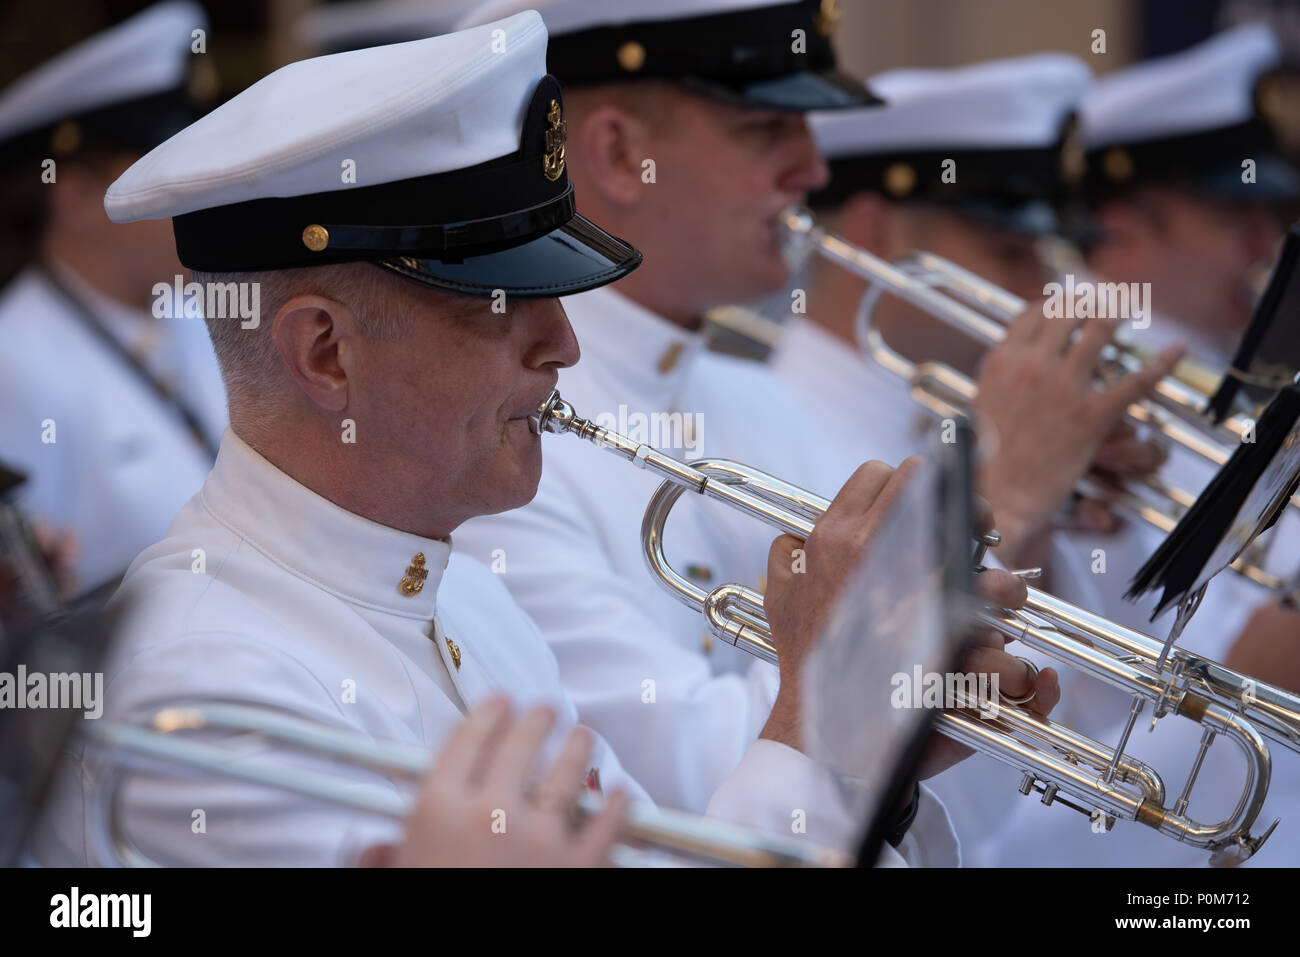 180605-N-HG258-1046 WASHINGTON (June 5, 2018) Chief Musician Stanley Curtis, trumpet instrumentalist with the U.S. Navy Ceremonial band performs at the U.S. Navy Memorial in Washington, D.C., during the commemoration of the 76th anniversary of the Battle of Midway. The Battle of Midway began on June 4 in 1942 and stands as one of the U.S. Navy's most historically significant naval battles. Fought on the high seas of the Pacific more than half a century ago, this battle altered the course of the war in the Pacific and thereby shaped the outcome of world events. (U.S. Navy photo by Senior Chief  - Stock Image